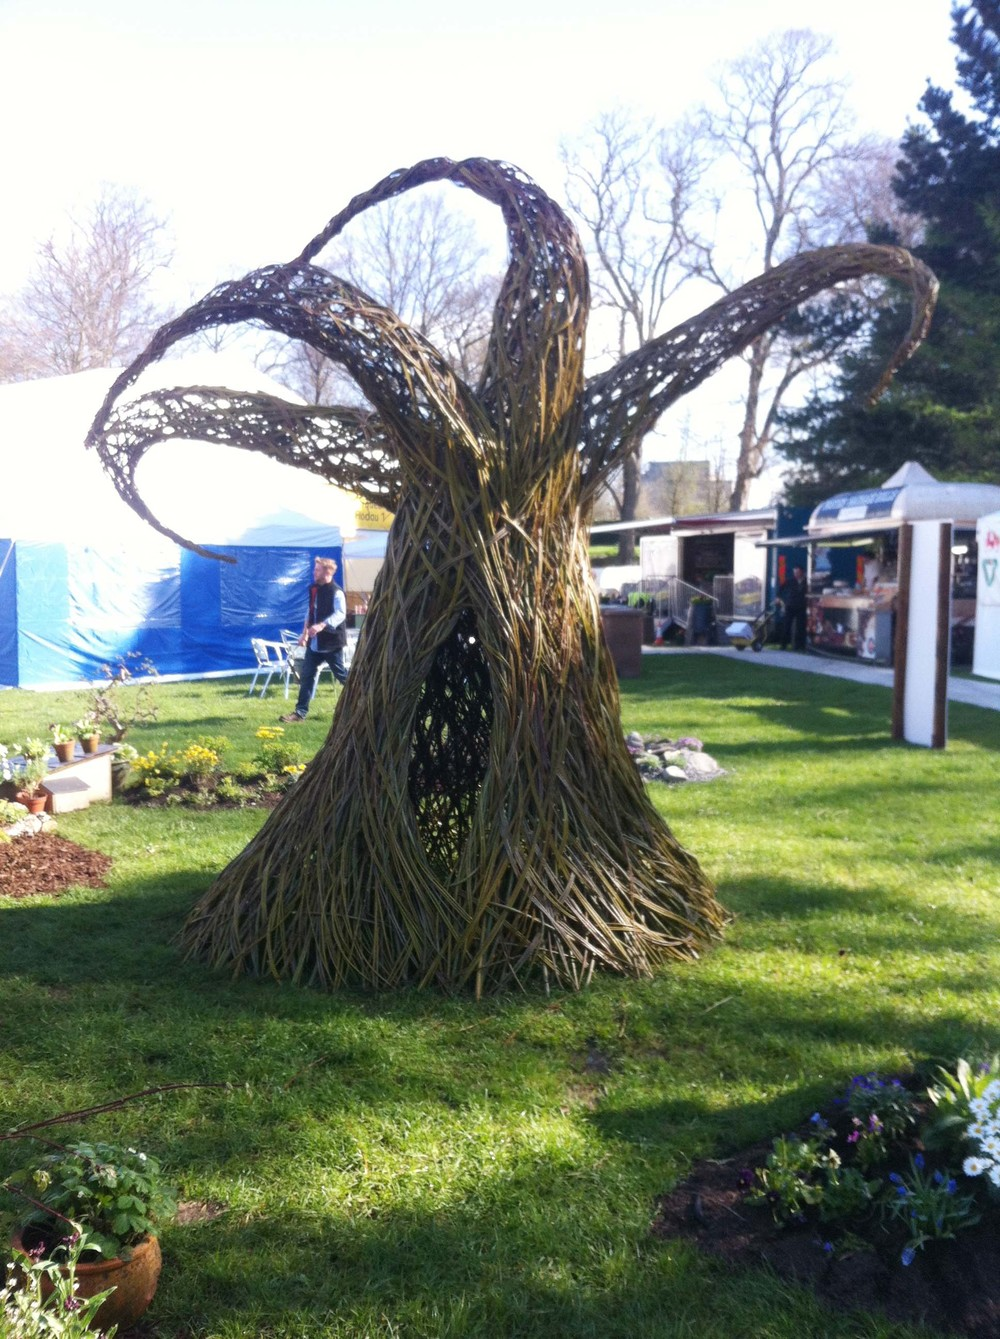 Mel makes many sculptures of dried and living willow for children's playgrounds and gardens.